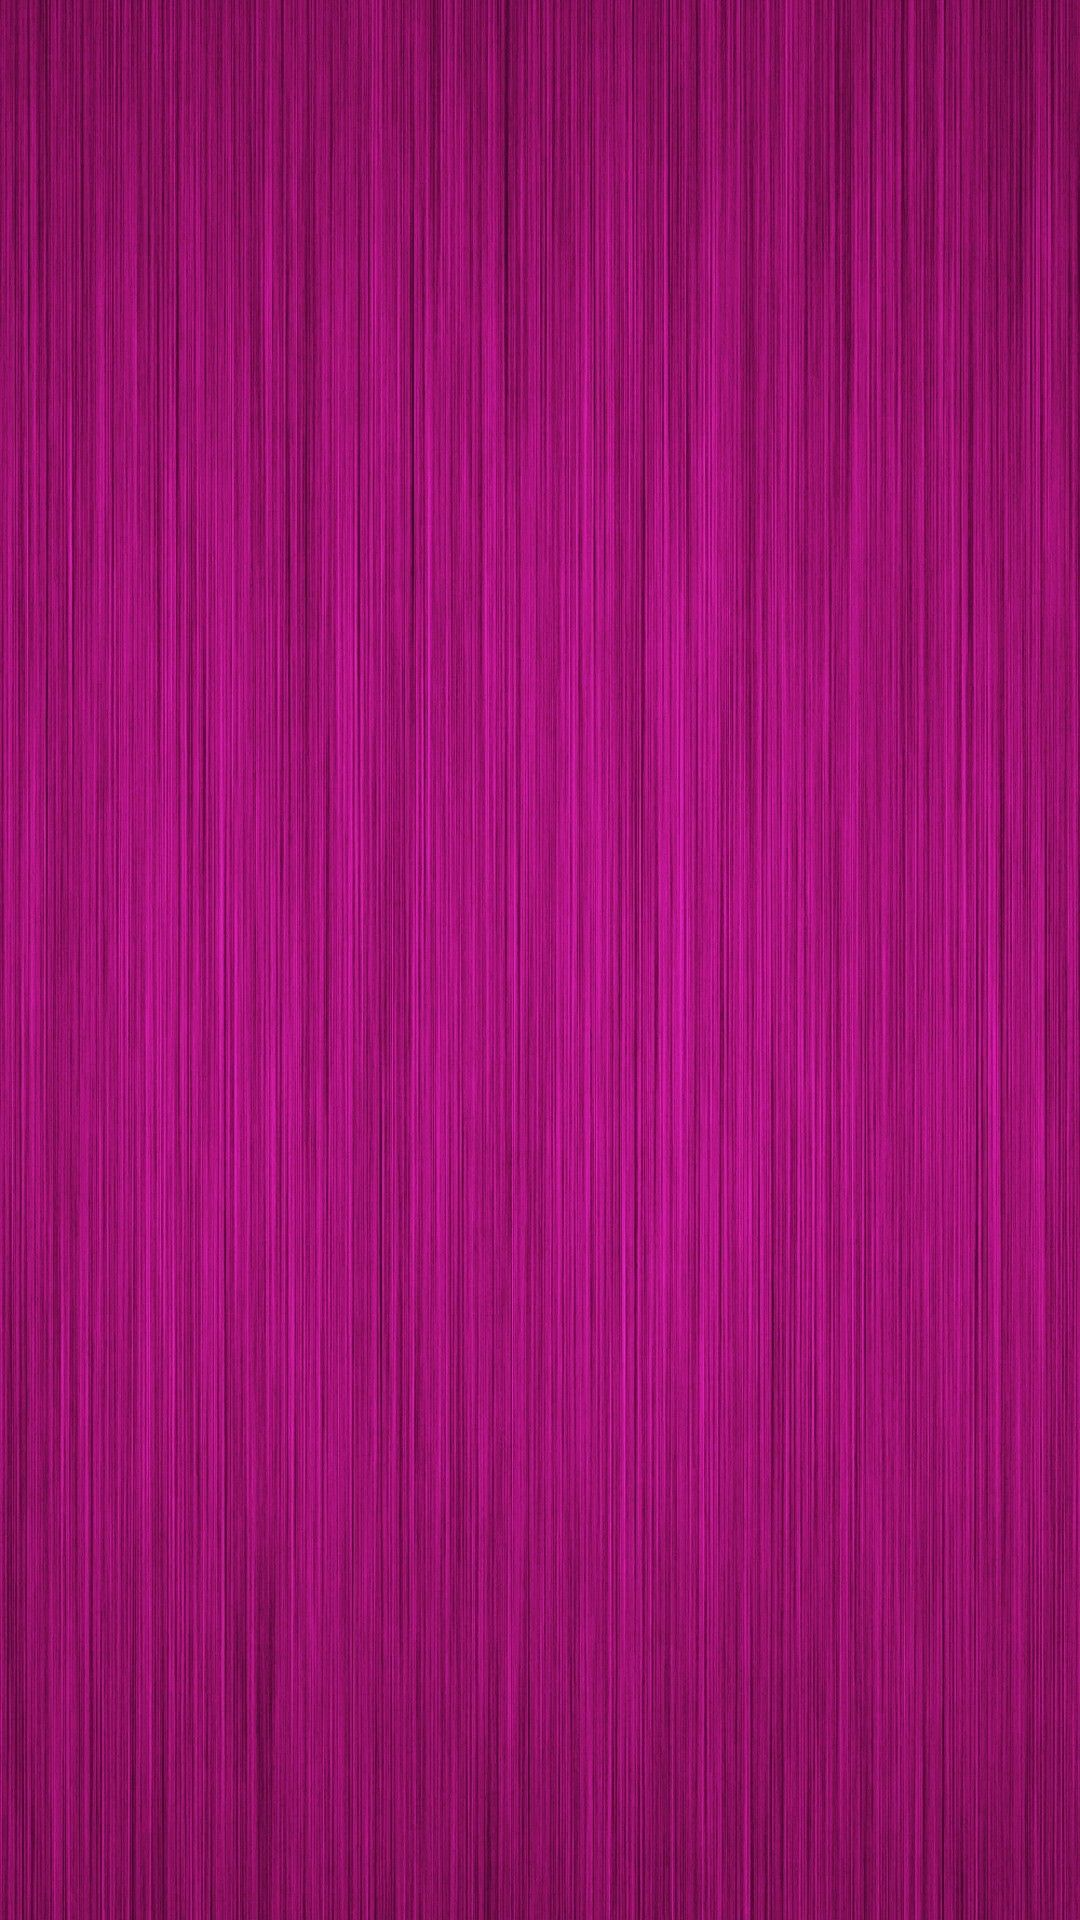 Wallpaper | Pink wallpaper, Metal background, Bright pink